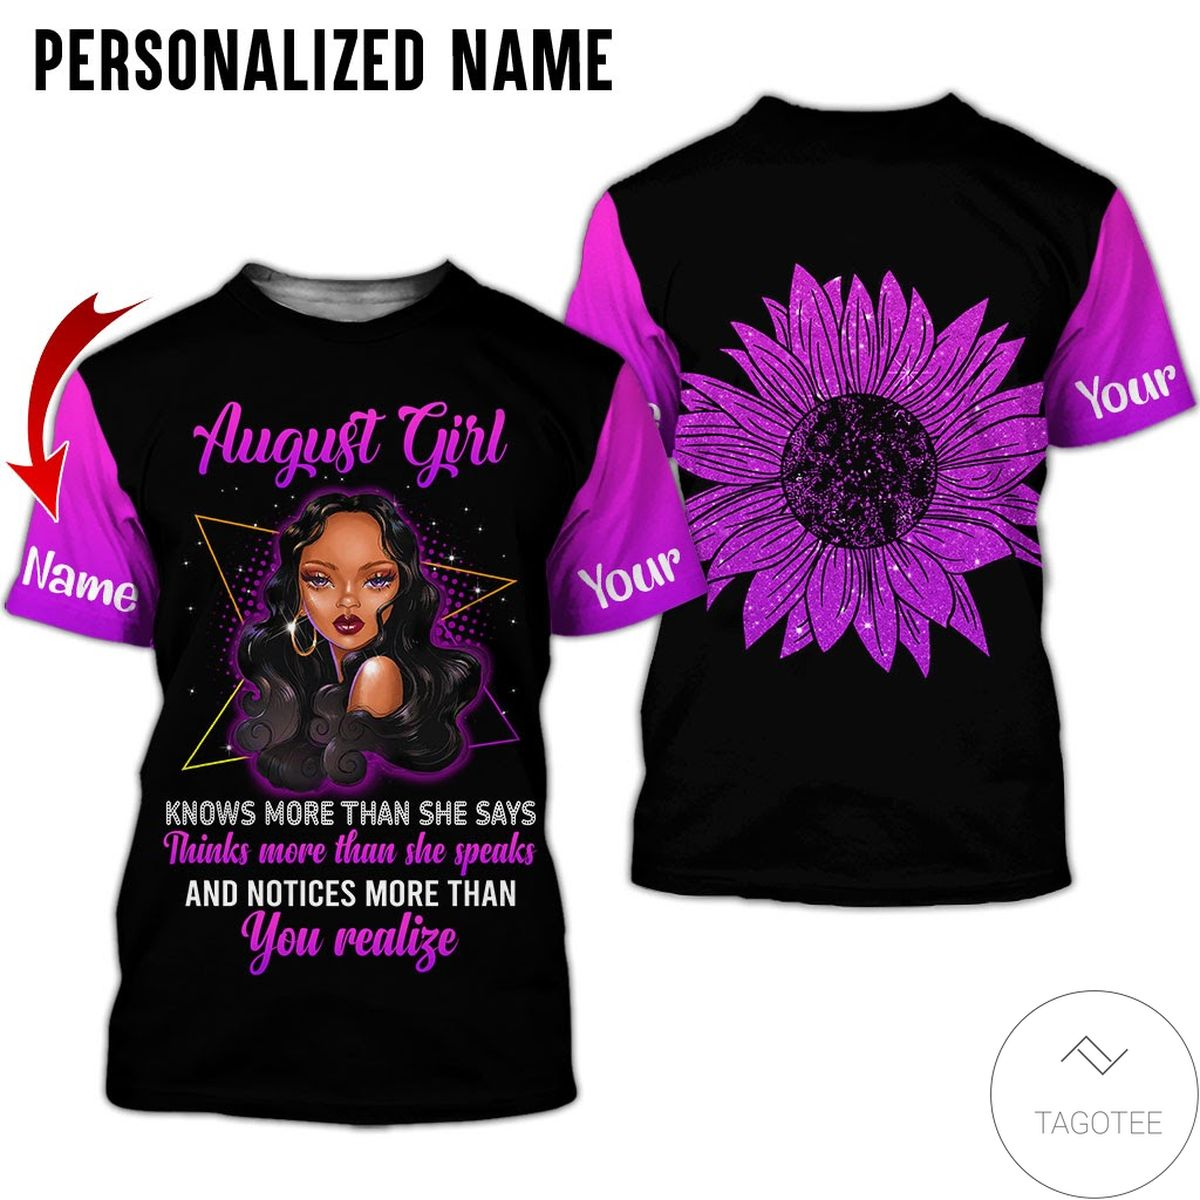 Personalized Name August Girl Know More Than She Says All Over Print Hoodiez